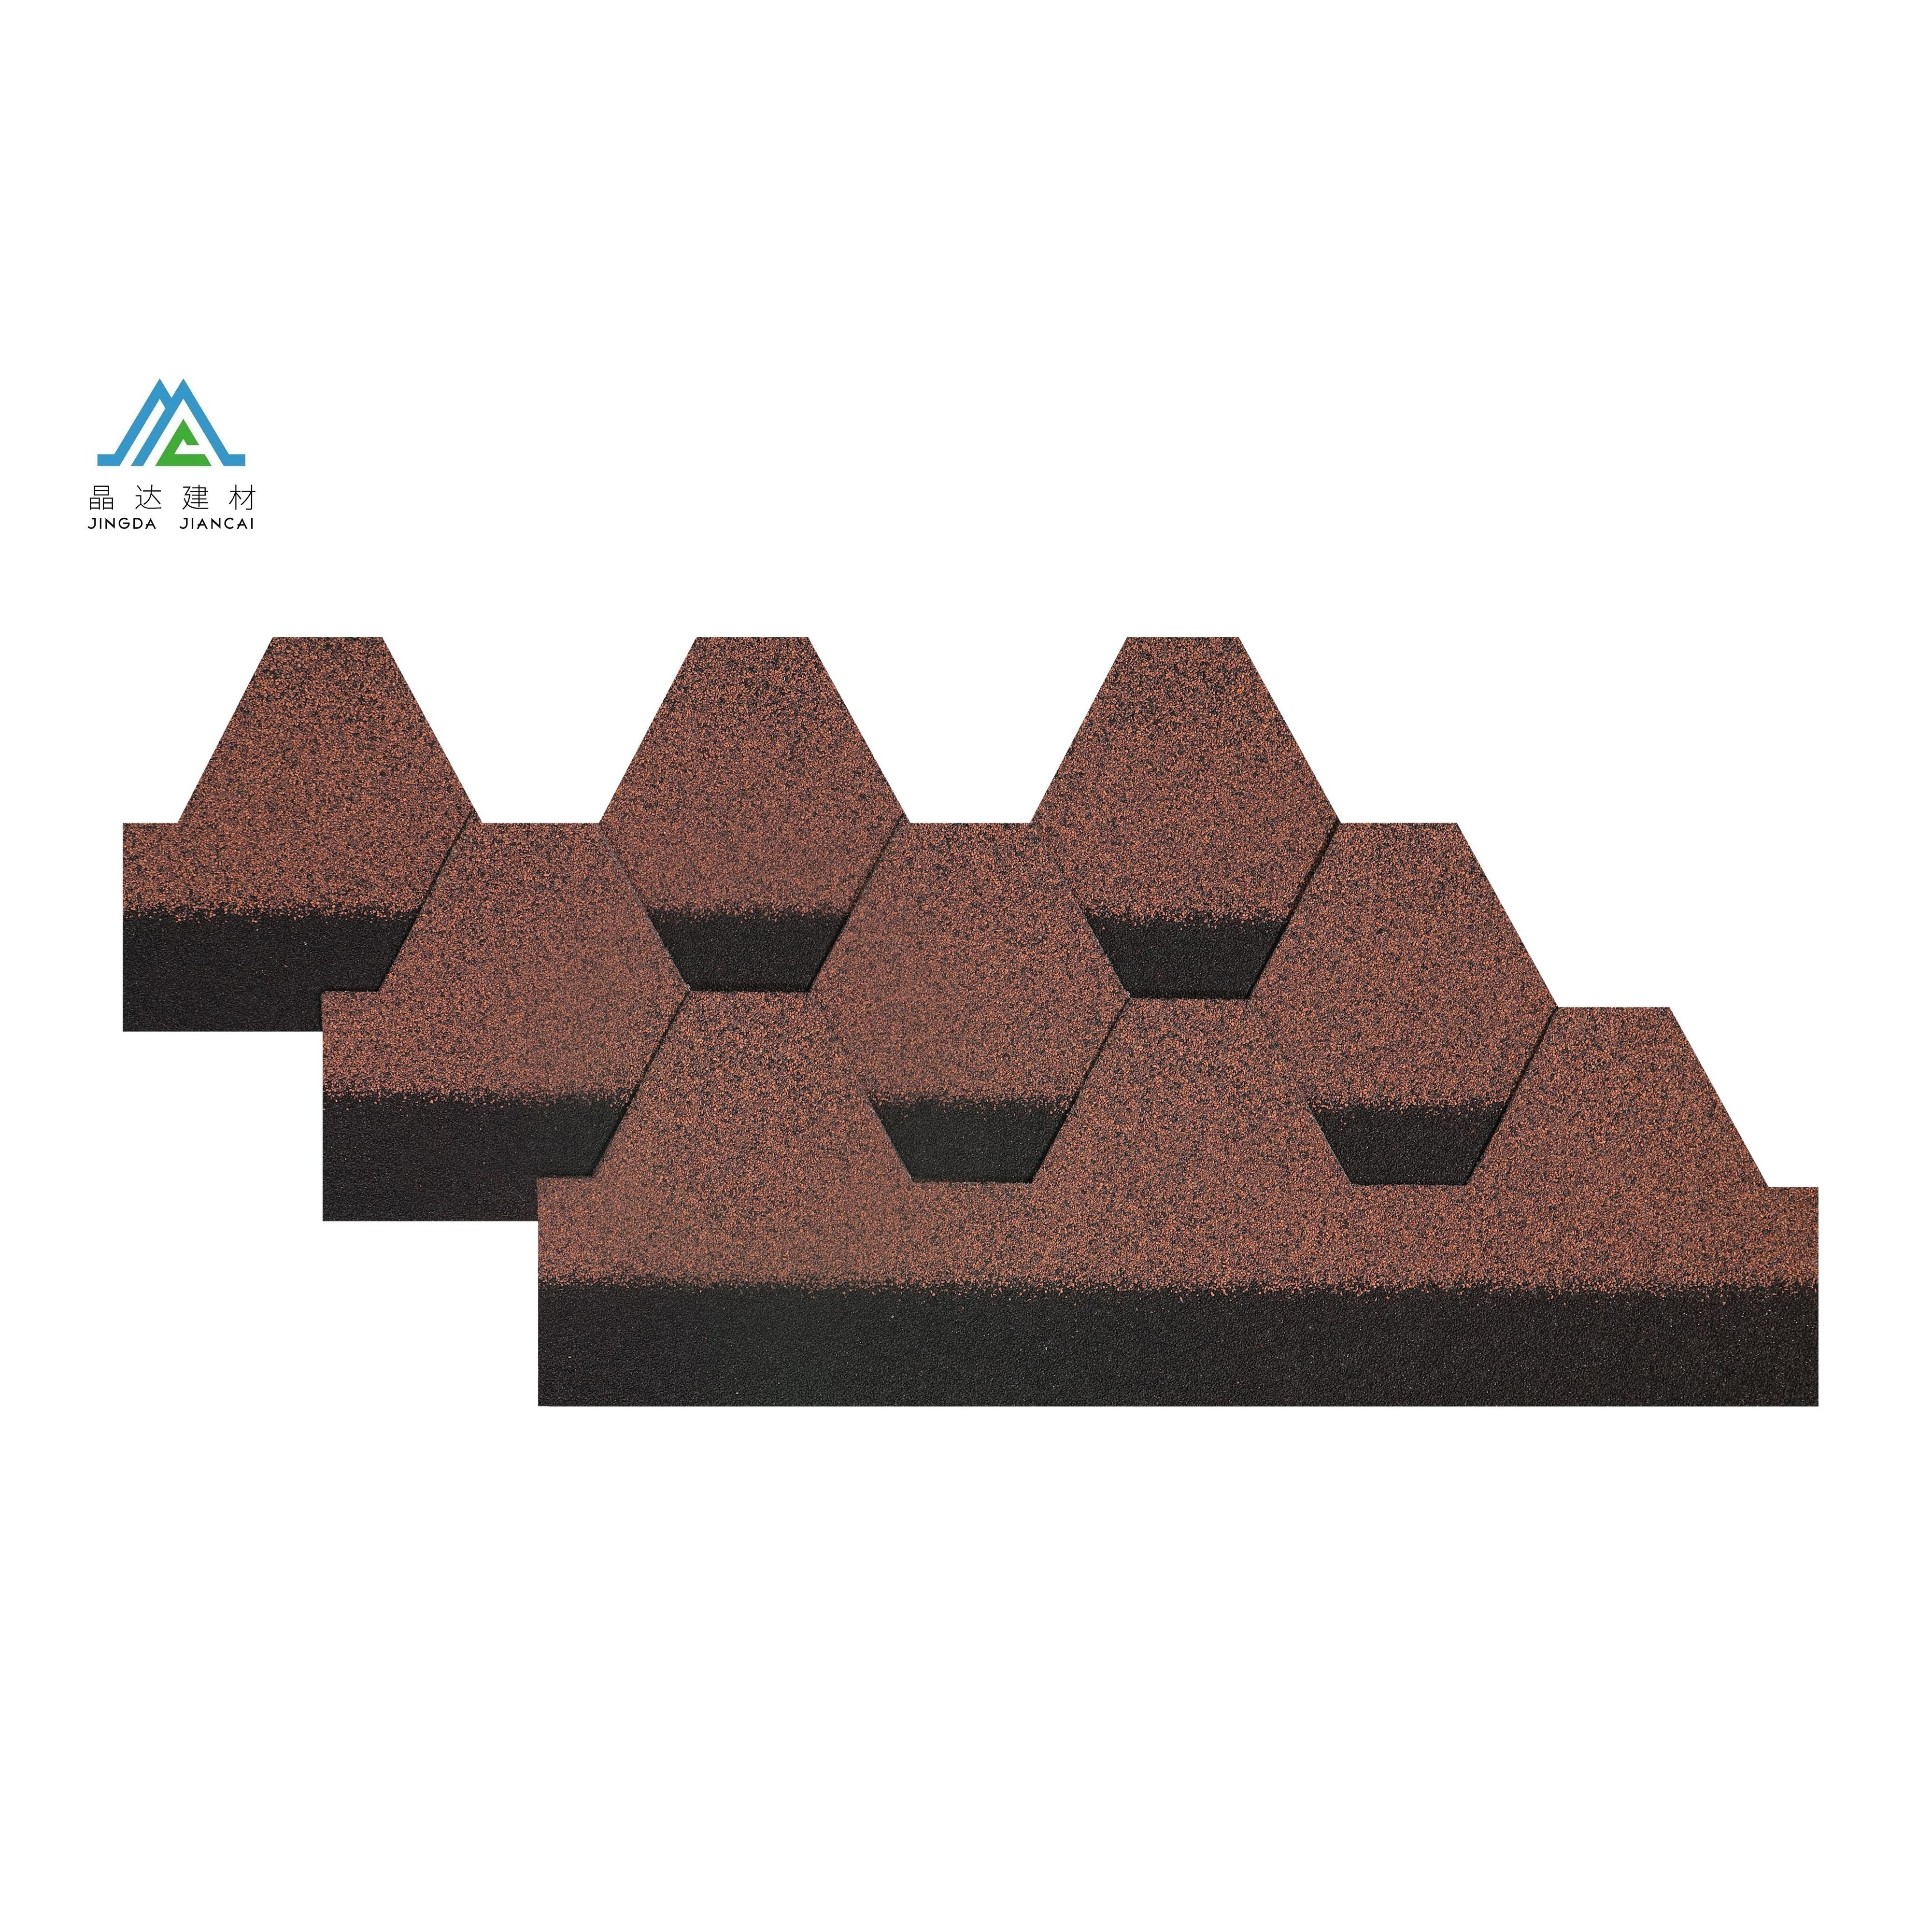 Online Shopping Construction Building Materials Beautiful Asphalt Shingles Roofing Tiles